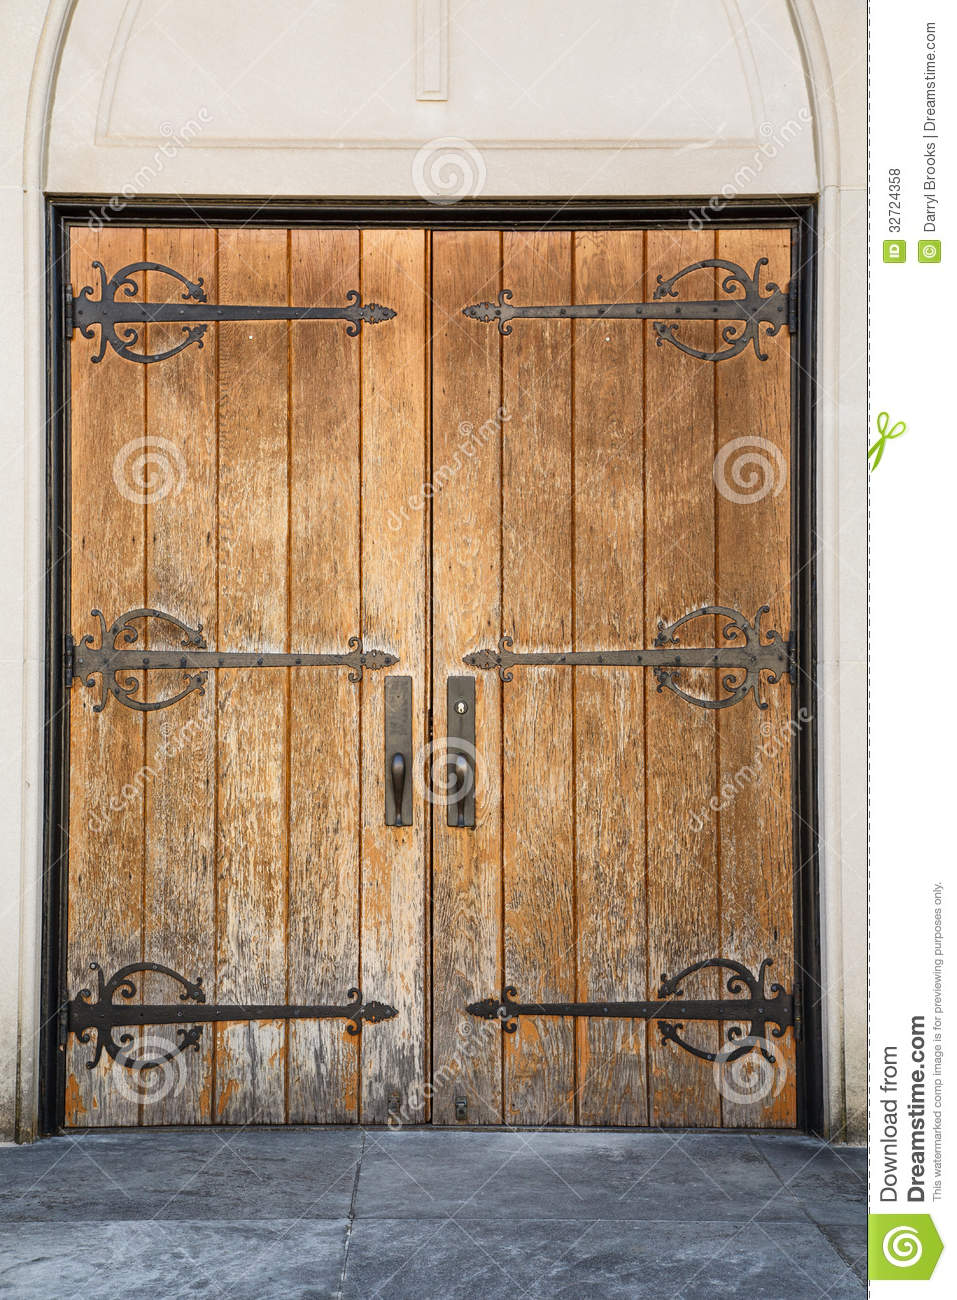 Old Church Doors With Iron Hinges Stock Photo Image Of